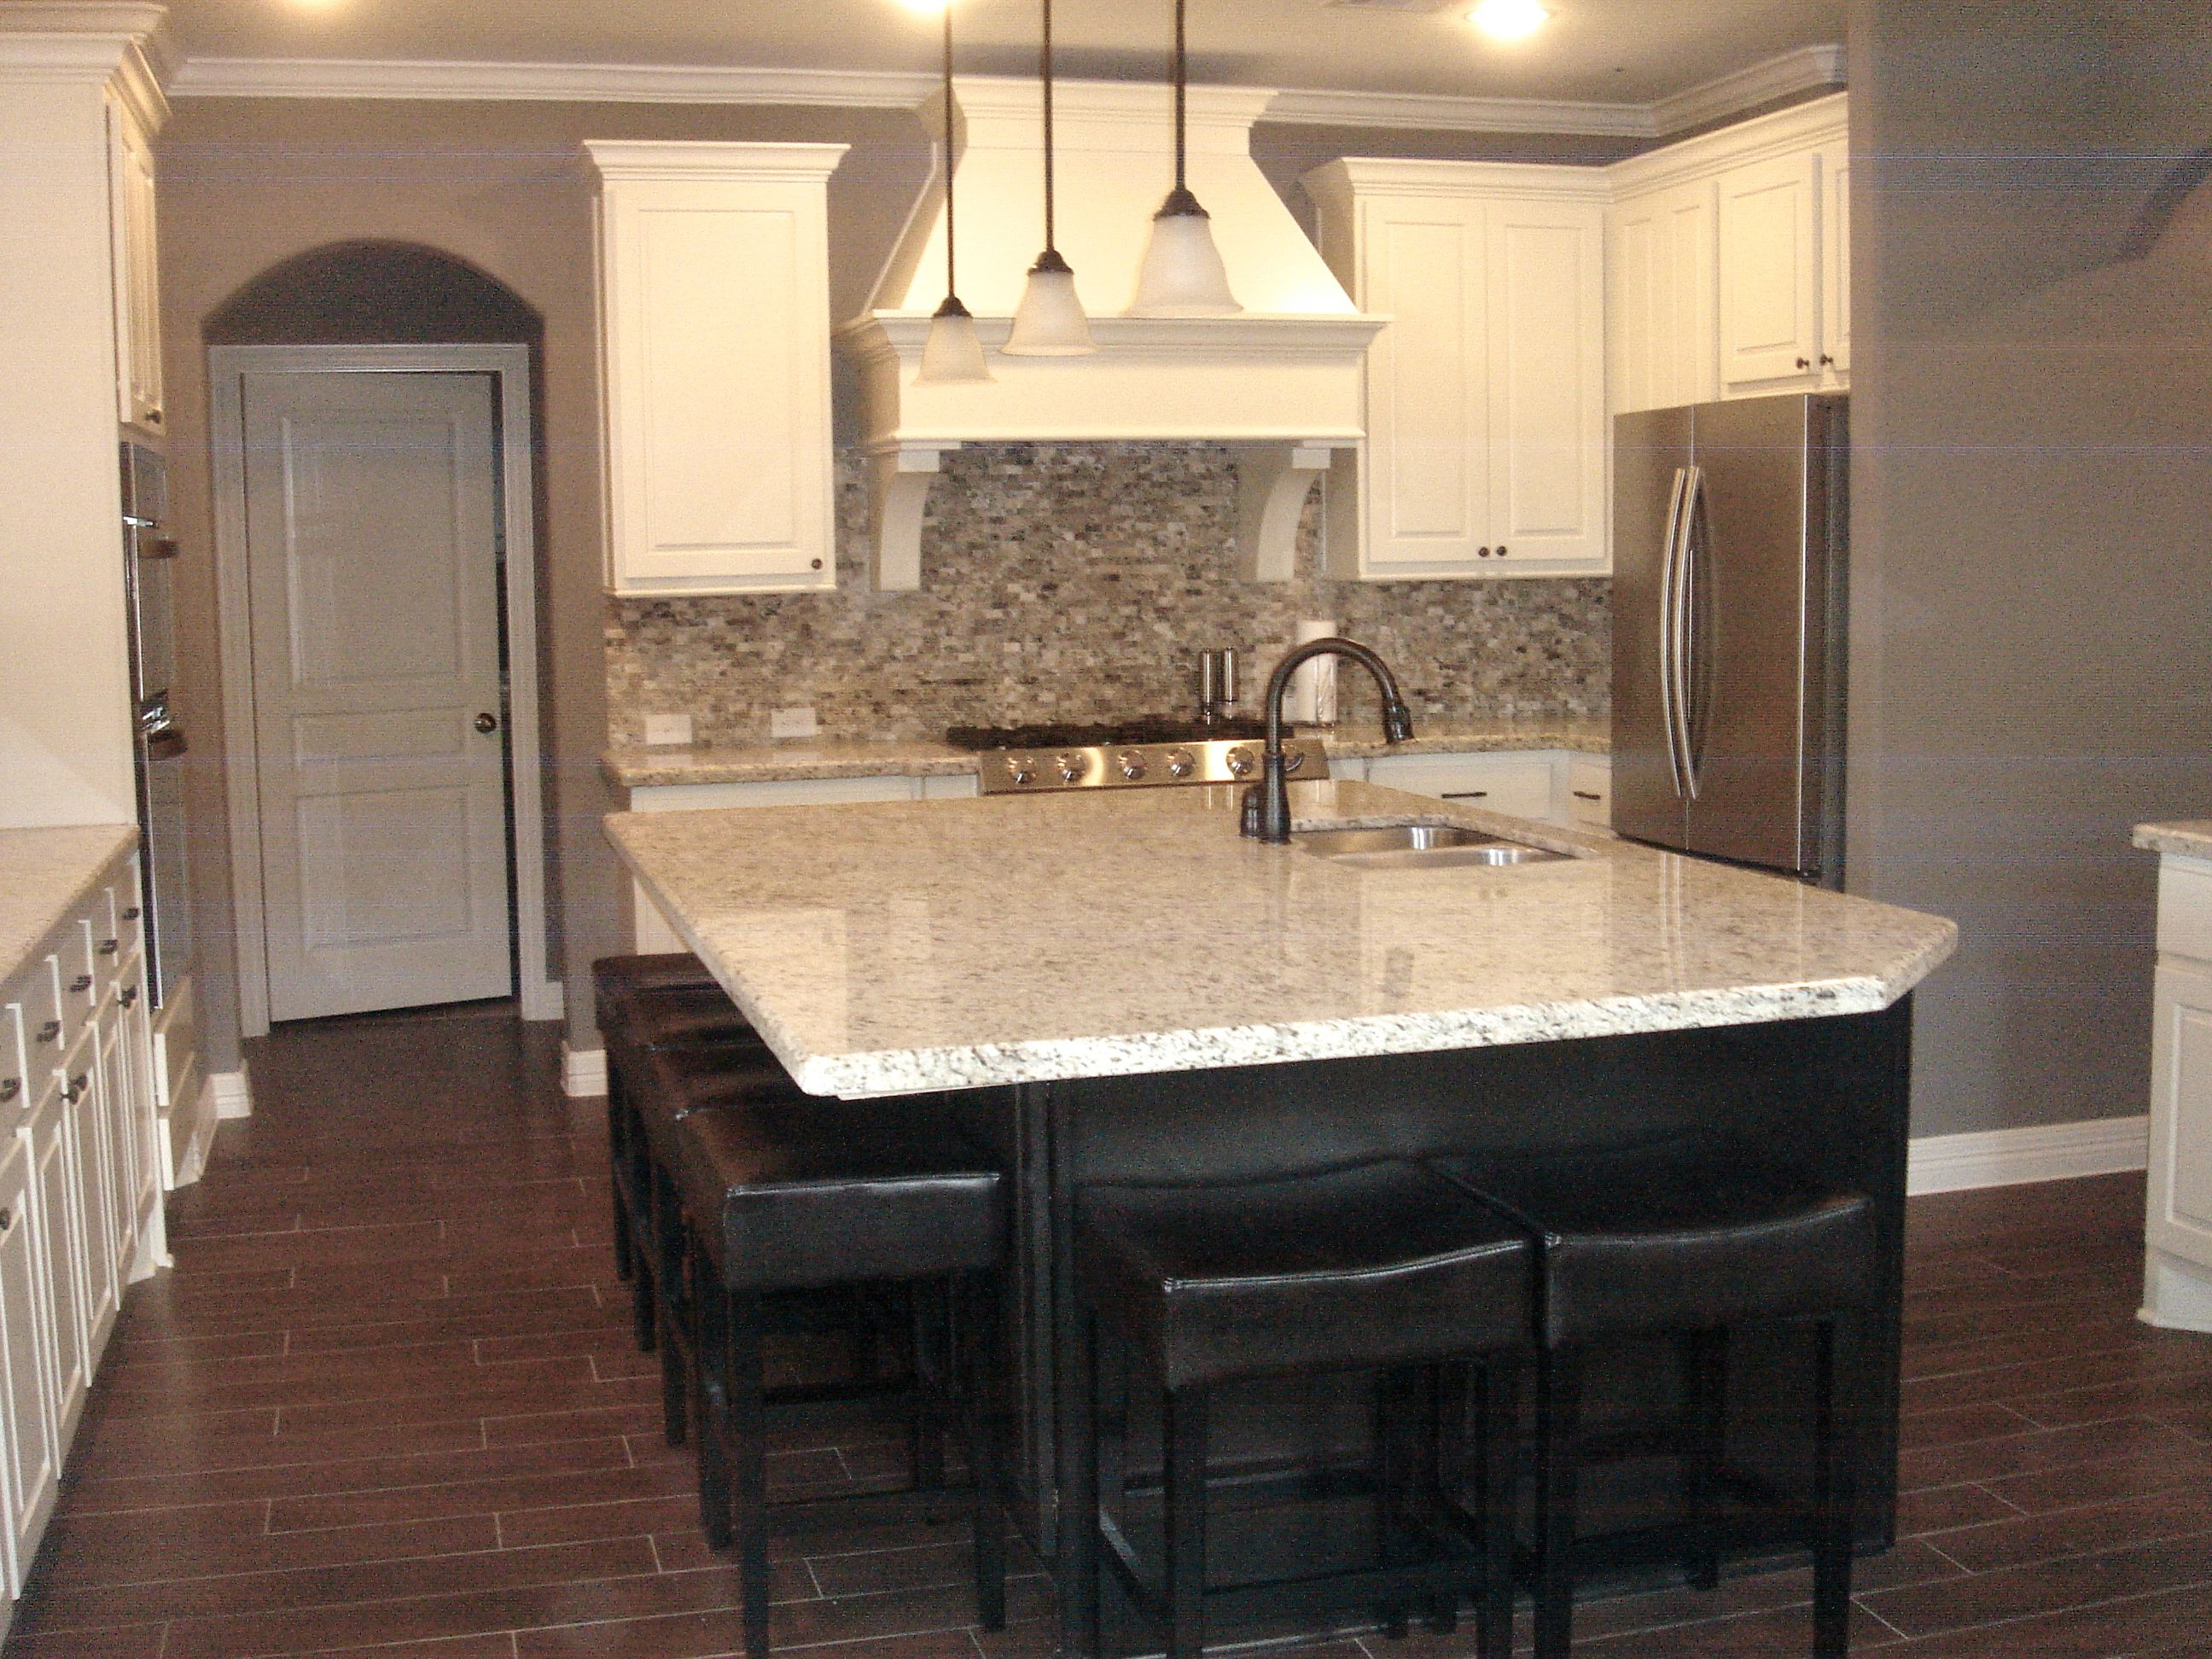 Kitchens With White Cabinets And Dark Floors kitchen - wood look tile dark island white cabinets light granite